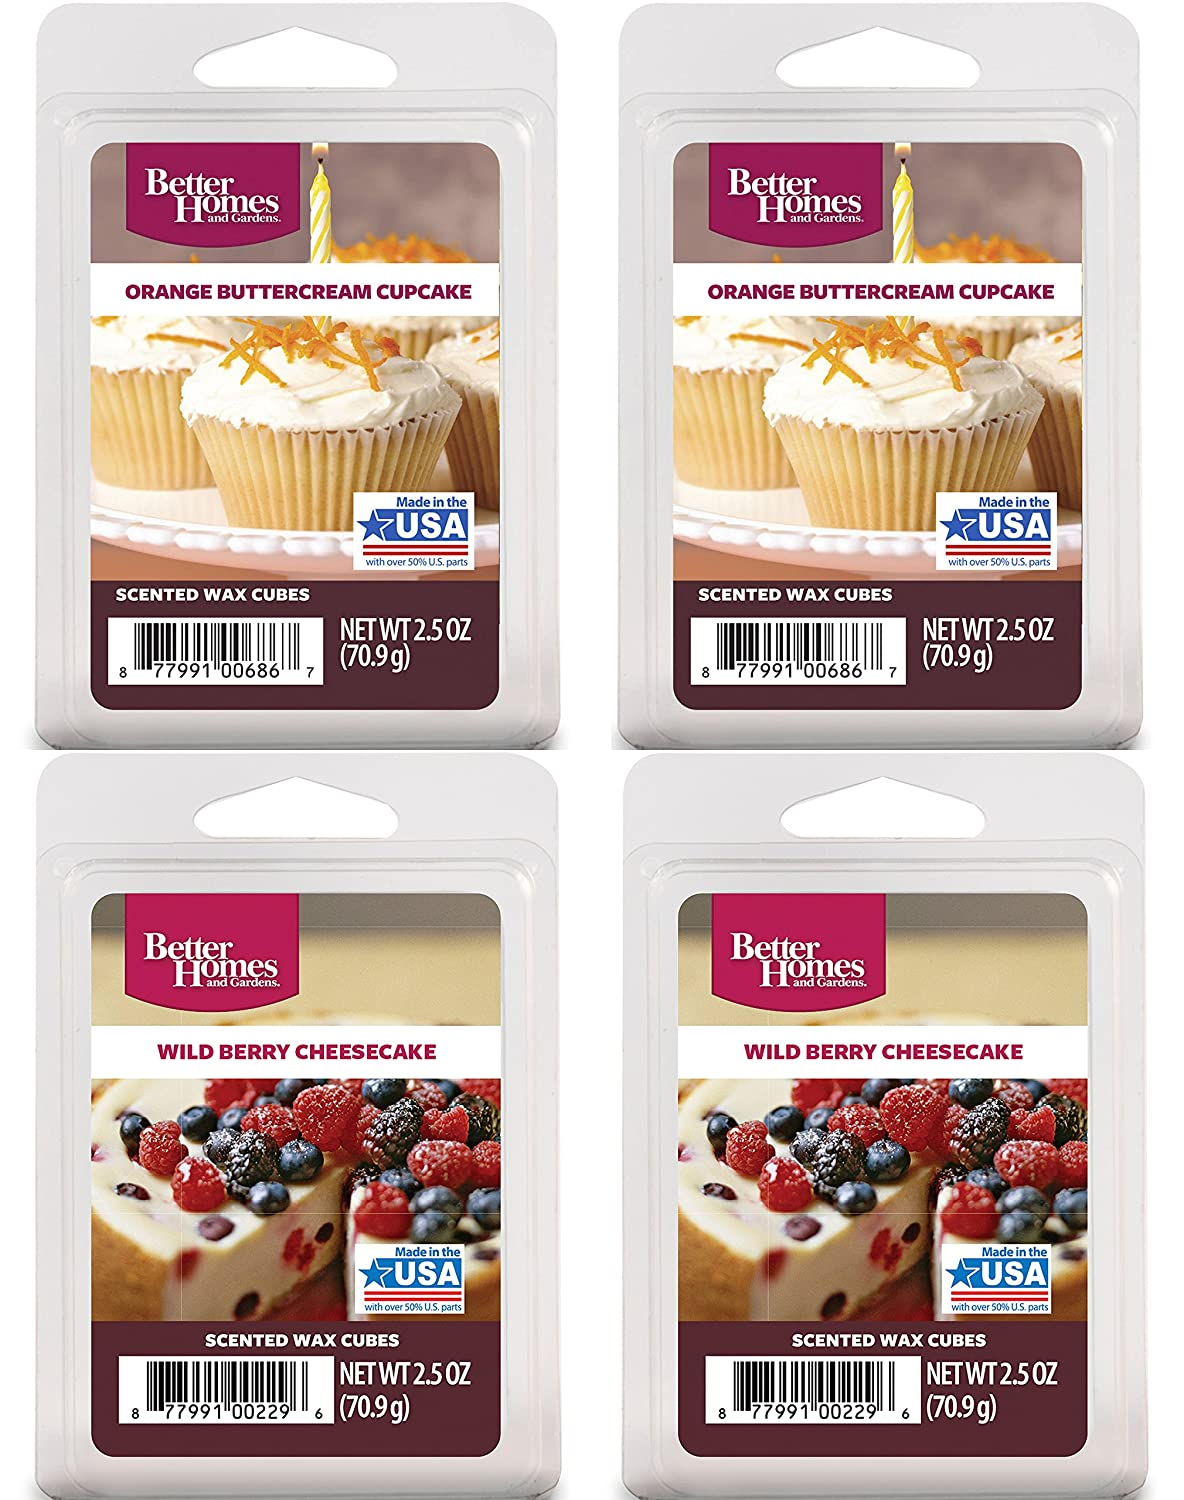 Better Homes and Gardens Multi Pack Scented Wax - Orange Buttercream Cupcake(2) Wild Berry Cheesecake(2)